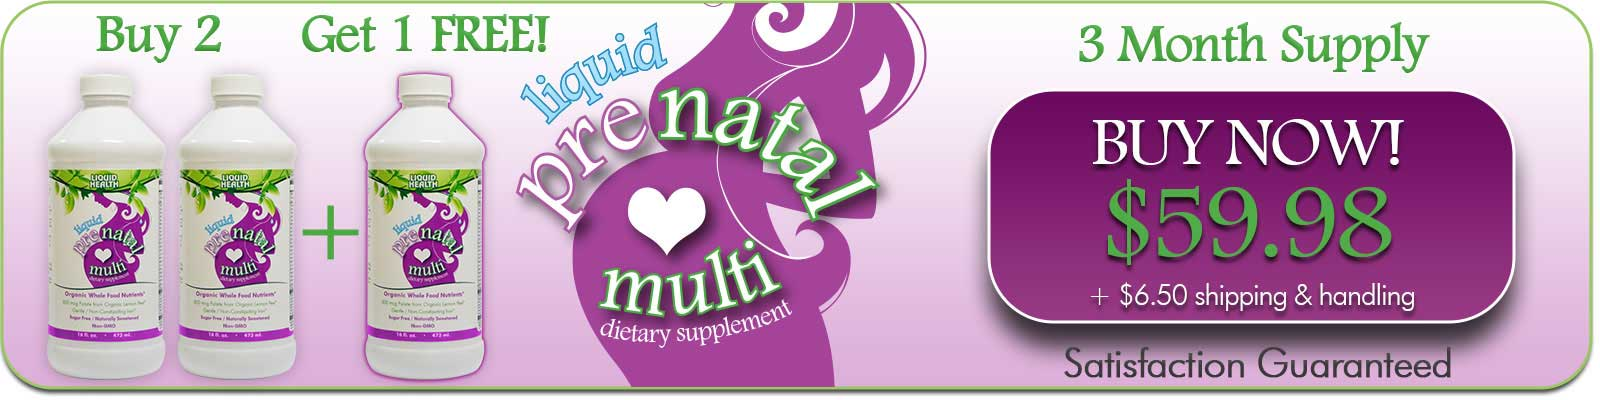 Buy 2 Bottles, Get 1 Free Bottle of Prenatal Vitamins